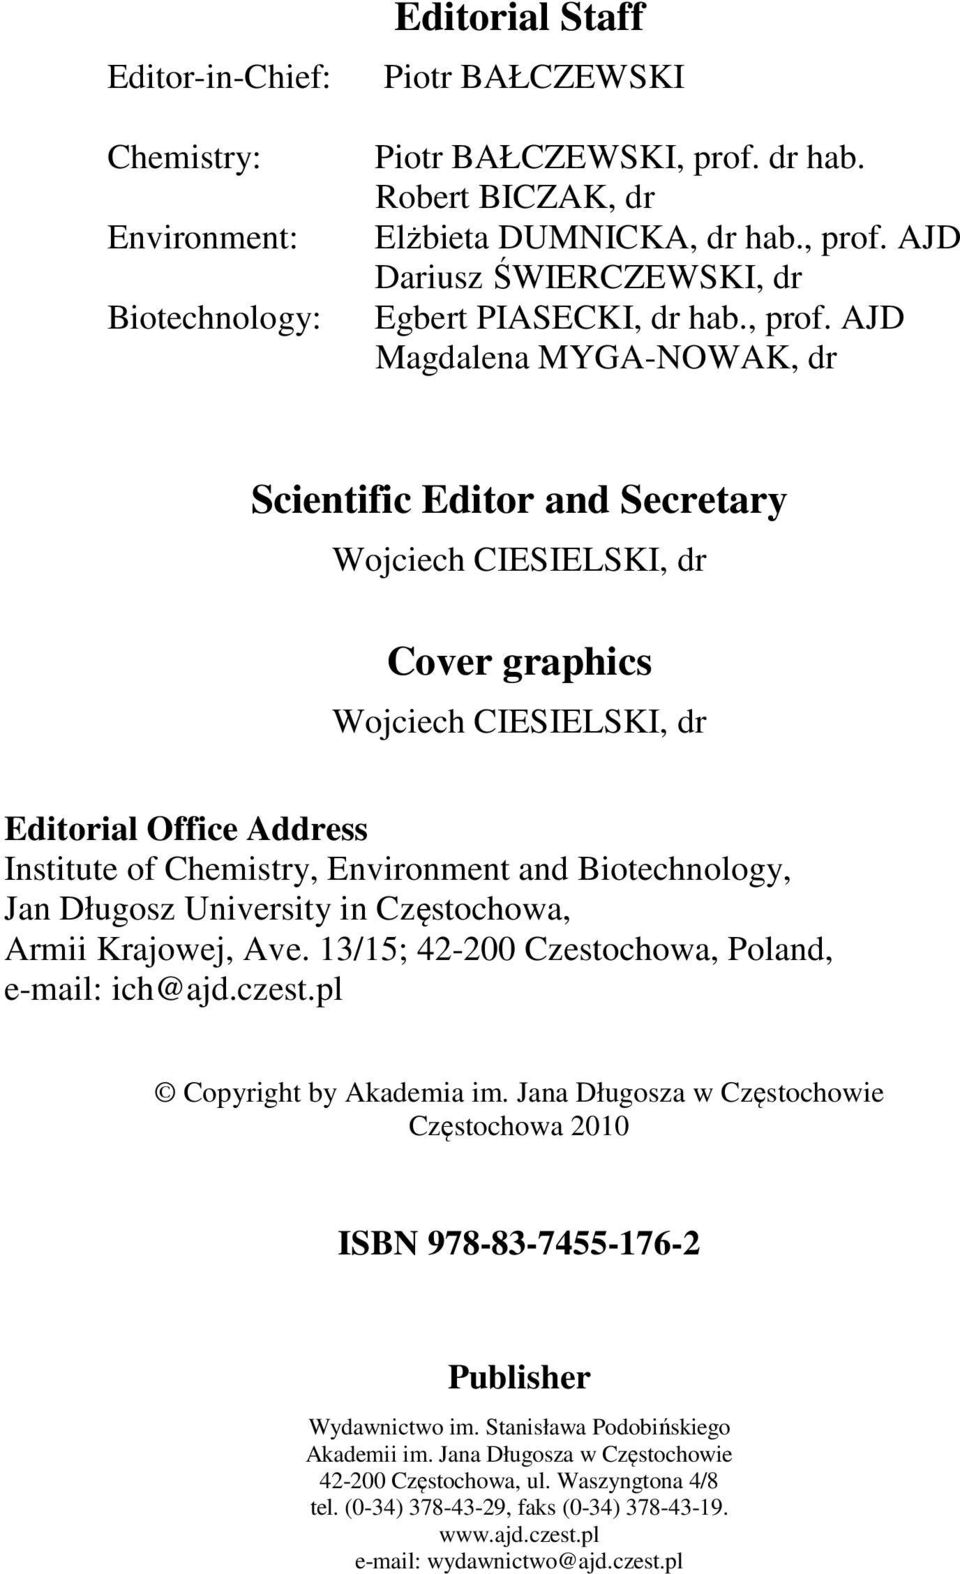 AJD Magdalena MYGA-OWAK, dr Scientific Editor and Secretary Wojciech CIESIELSKI, dr Cover graphics Wojciech CIESIELSKI, dr Editorial Office Address Institute of Chemistry, Environment and